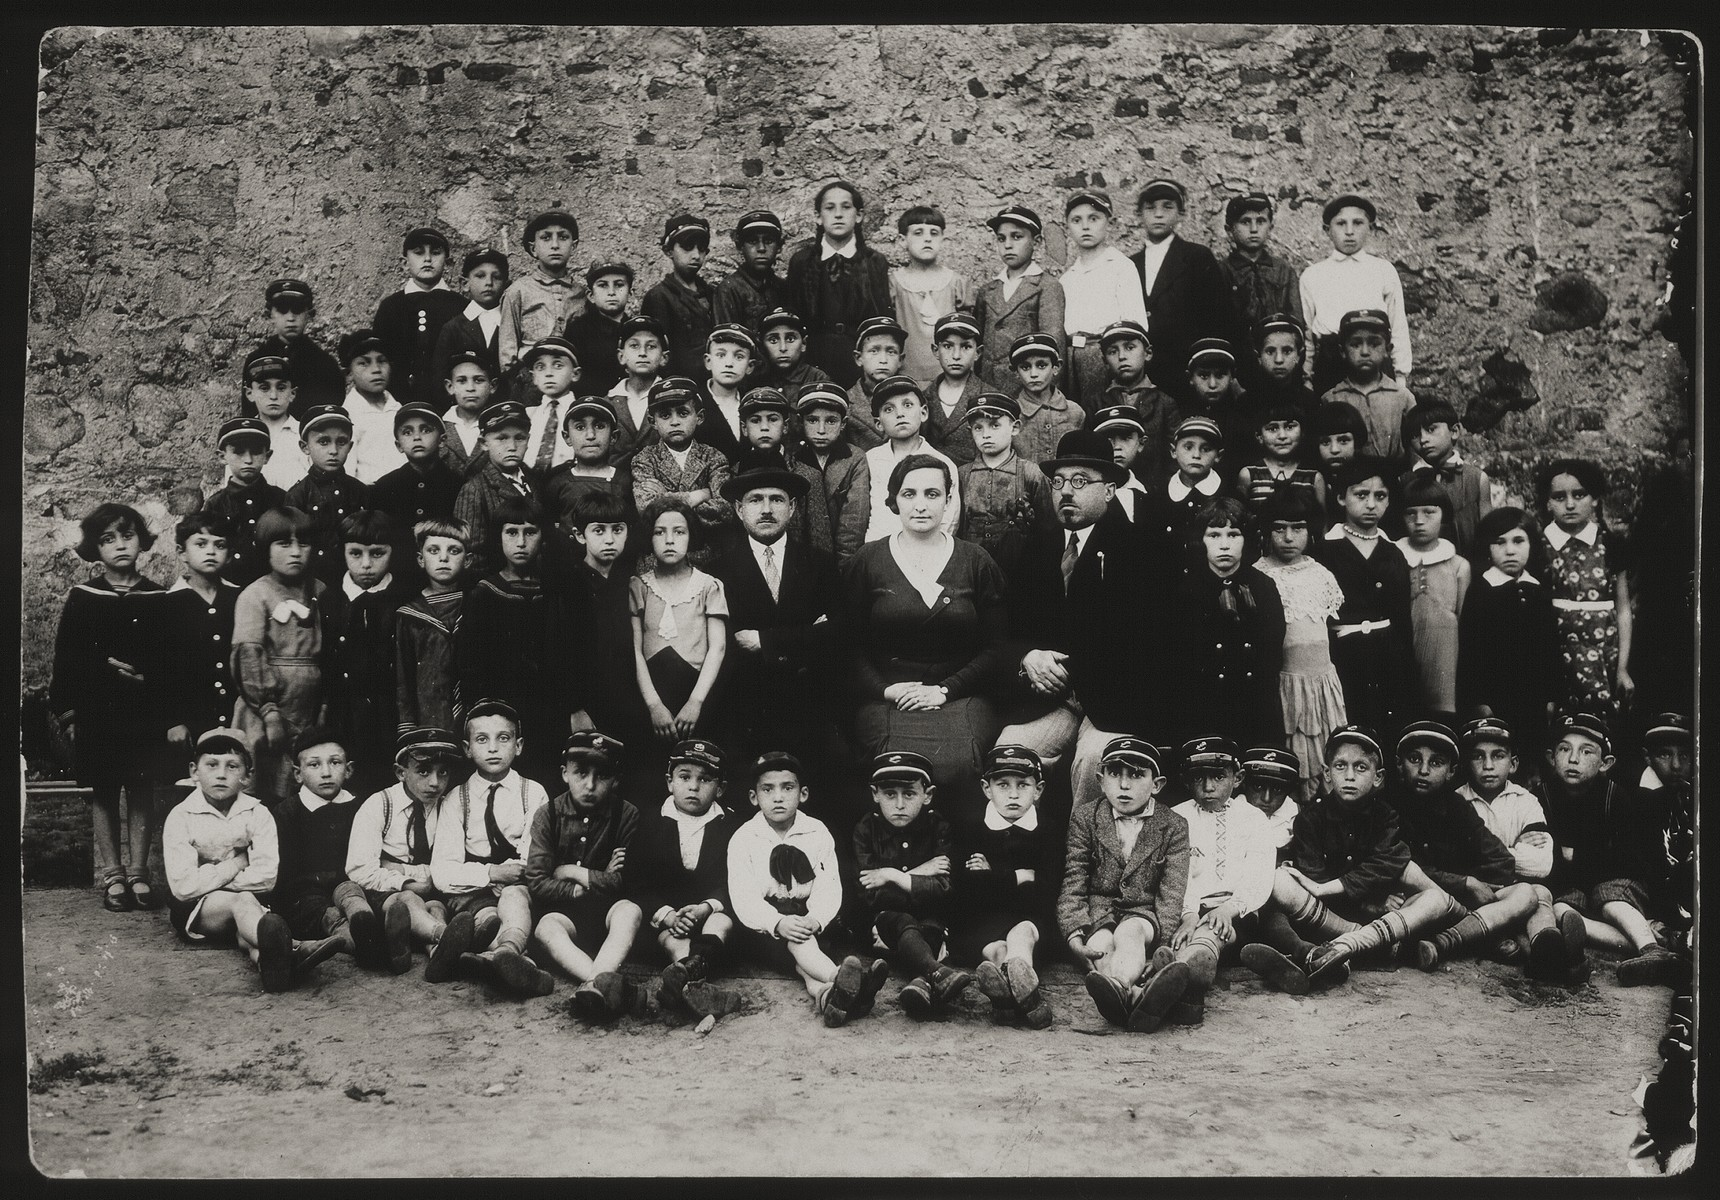 Group portrait of the elementary school in Eisiskes.   First row (sitting on the floor): Avigdor Katz (first from left), Moshe Bastunski (eighth from left) Avremele Botwinik, son of the principal (ninth from left). Second row from bottom: Rochel (far right), Rivka Dubchansky (sixth from right), Leah Tawlitski (fifth from right), Dora Kremin Dimitro (fourth from left). Sitting right of the female teacher is Shael der Lehrer.  To her left (wearing hat and glasses) is Principal Botwinik. Third row from bottom: Leibke Remz (fifth from left), Leibke Kaganovicz (Leon Kahn, sixth from left). Second row from top: Zvi Michalowski (fifth from right). Top row: Rivka Pushkin Cofnas (seventh from right).   Dora, Leibke, Zvi, Avremel all survived the Holocaust in the forests. Rivka survived the Holocaust in Russia.  All others were murdered during the Holocaust.